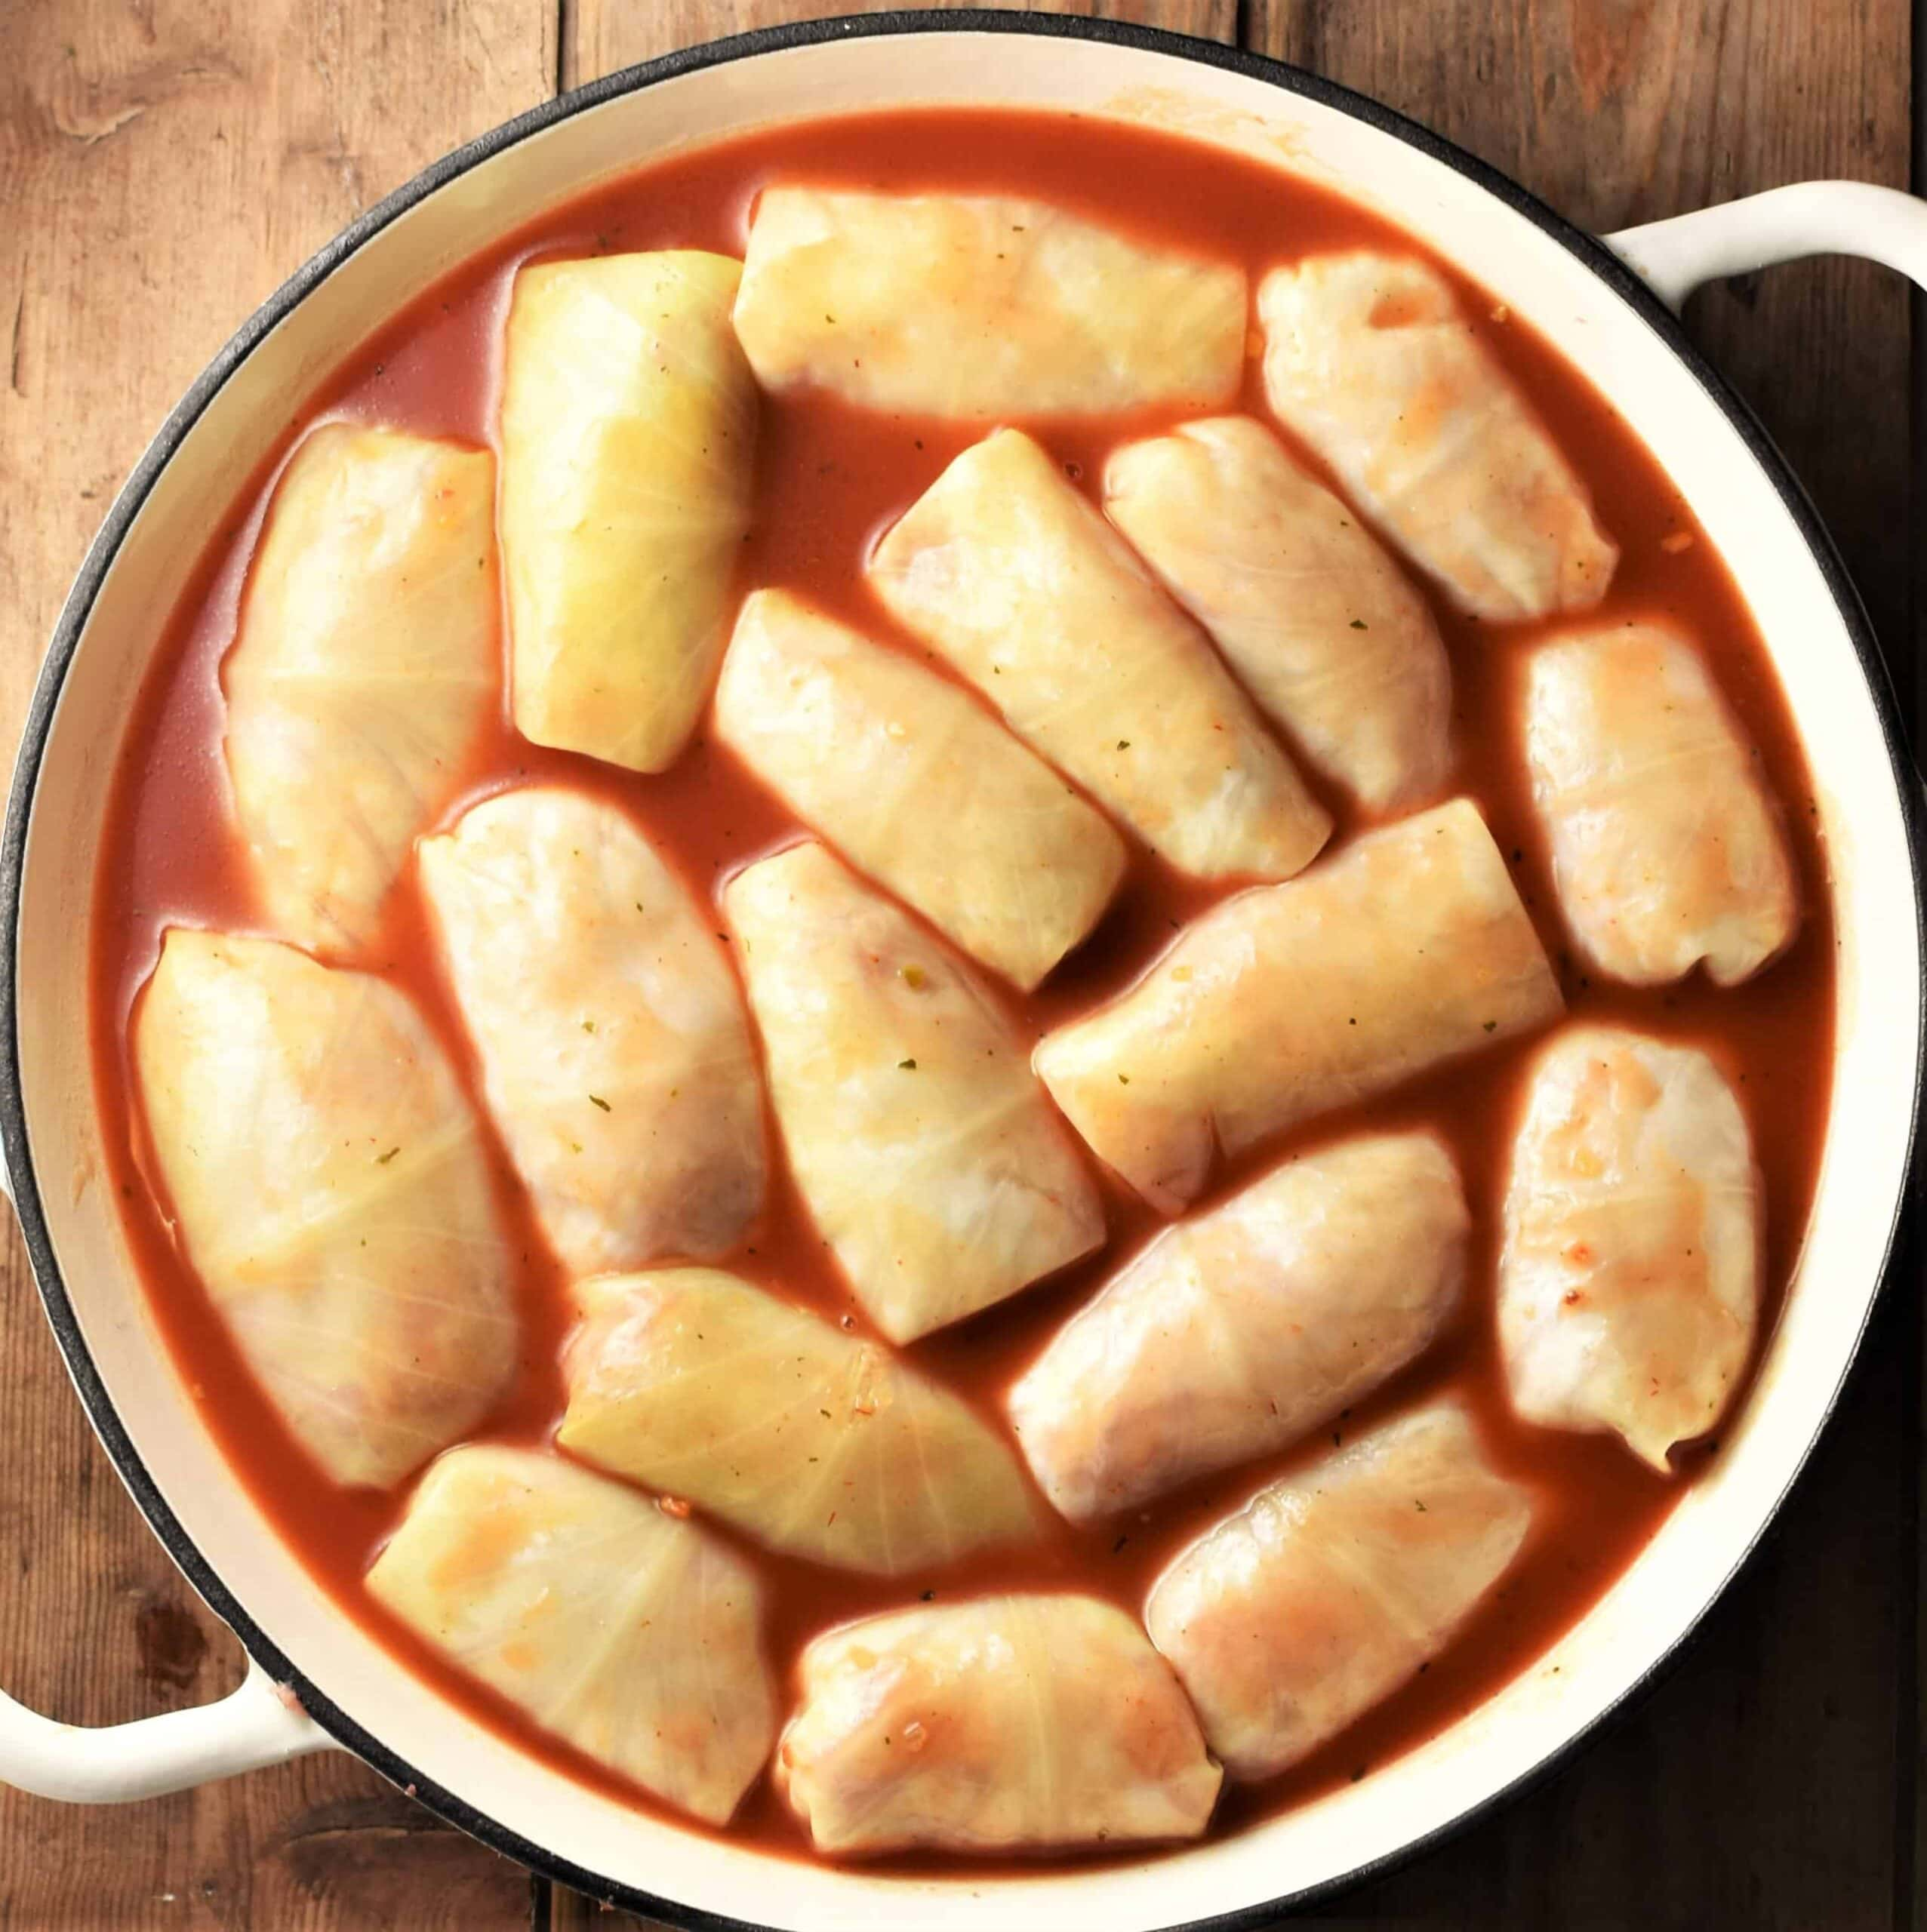 Cabbage rolls in tomato sauce inside large shallow yellow pan.